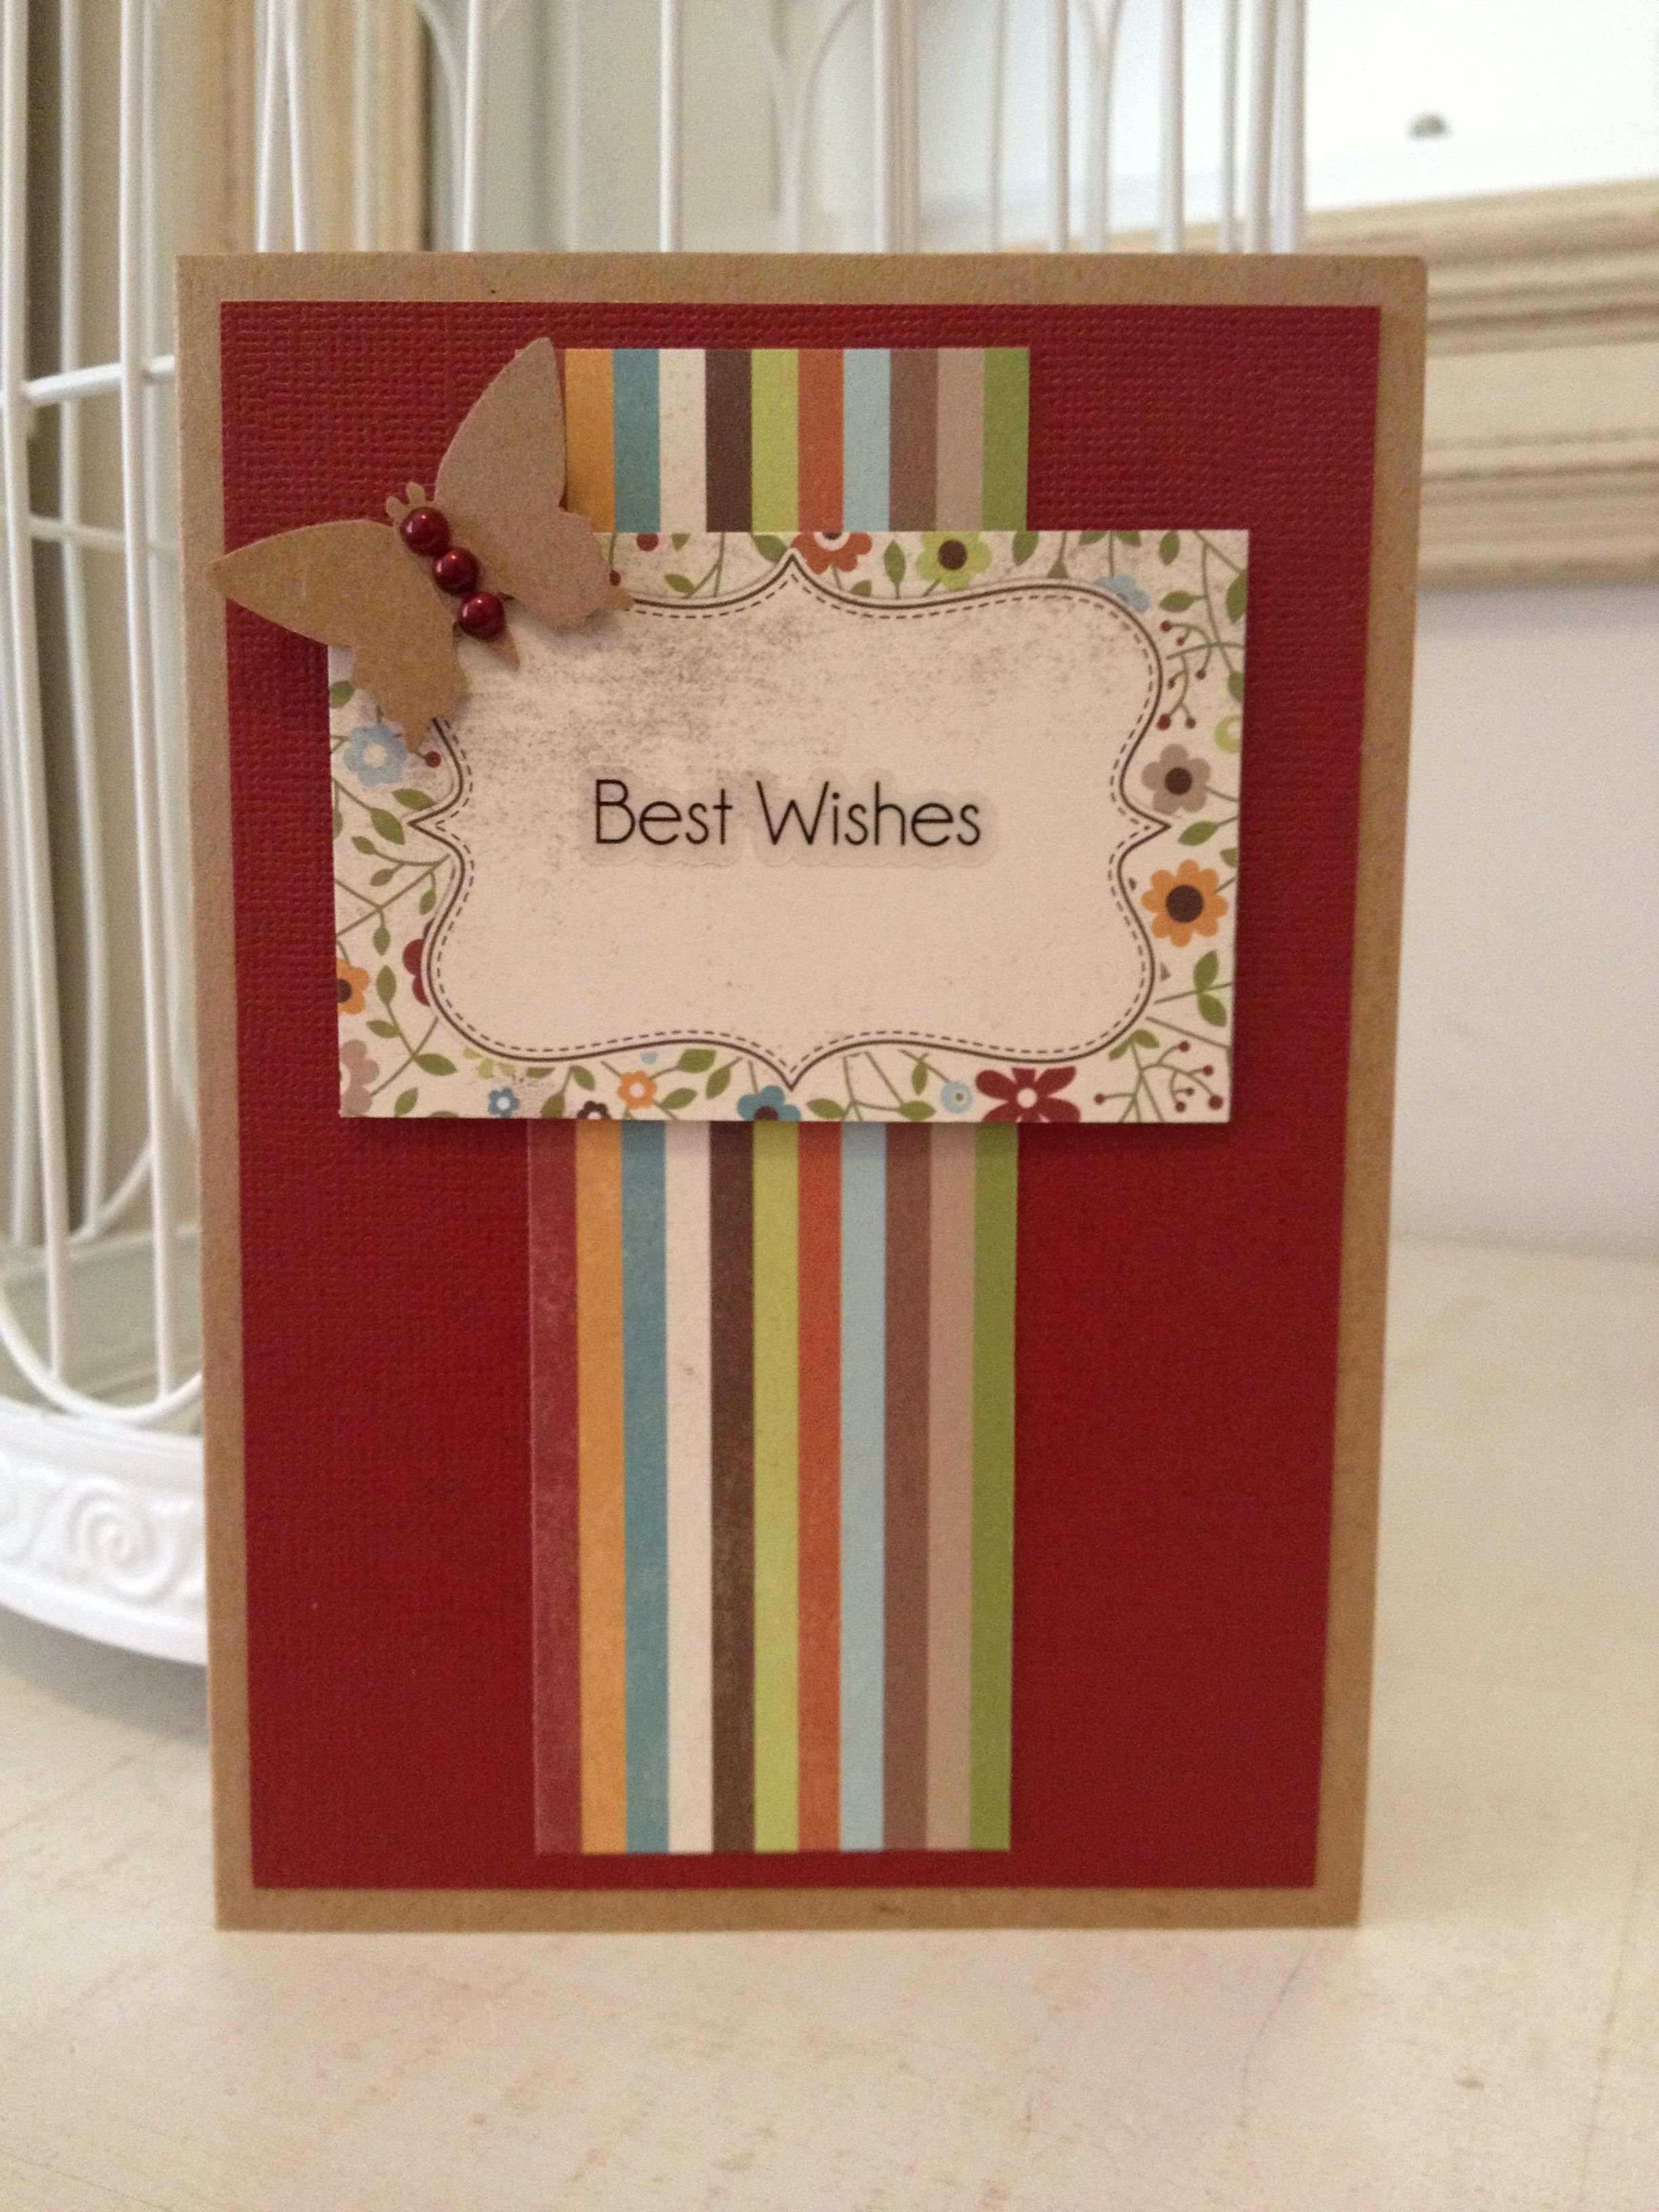 Best wishes card cards pinterest cards and card ideas